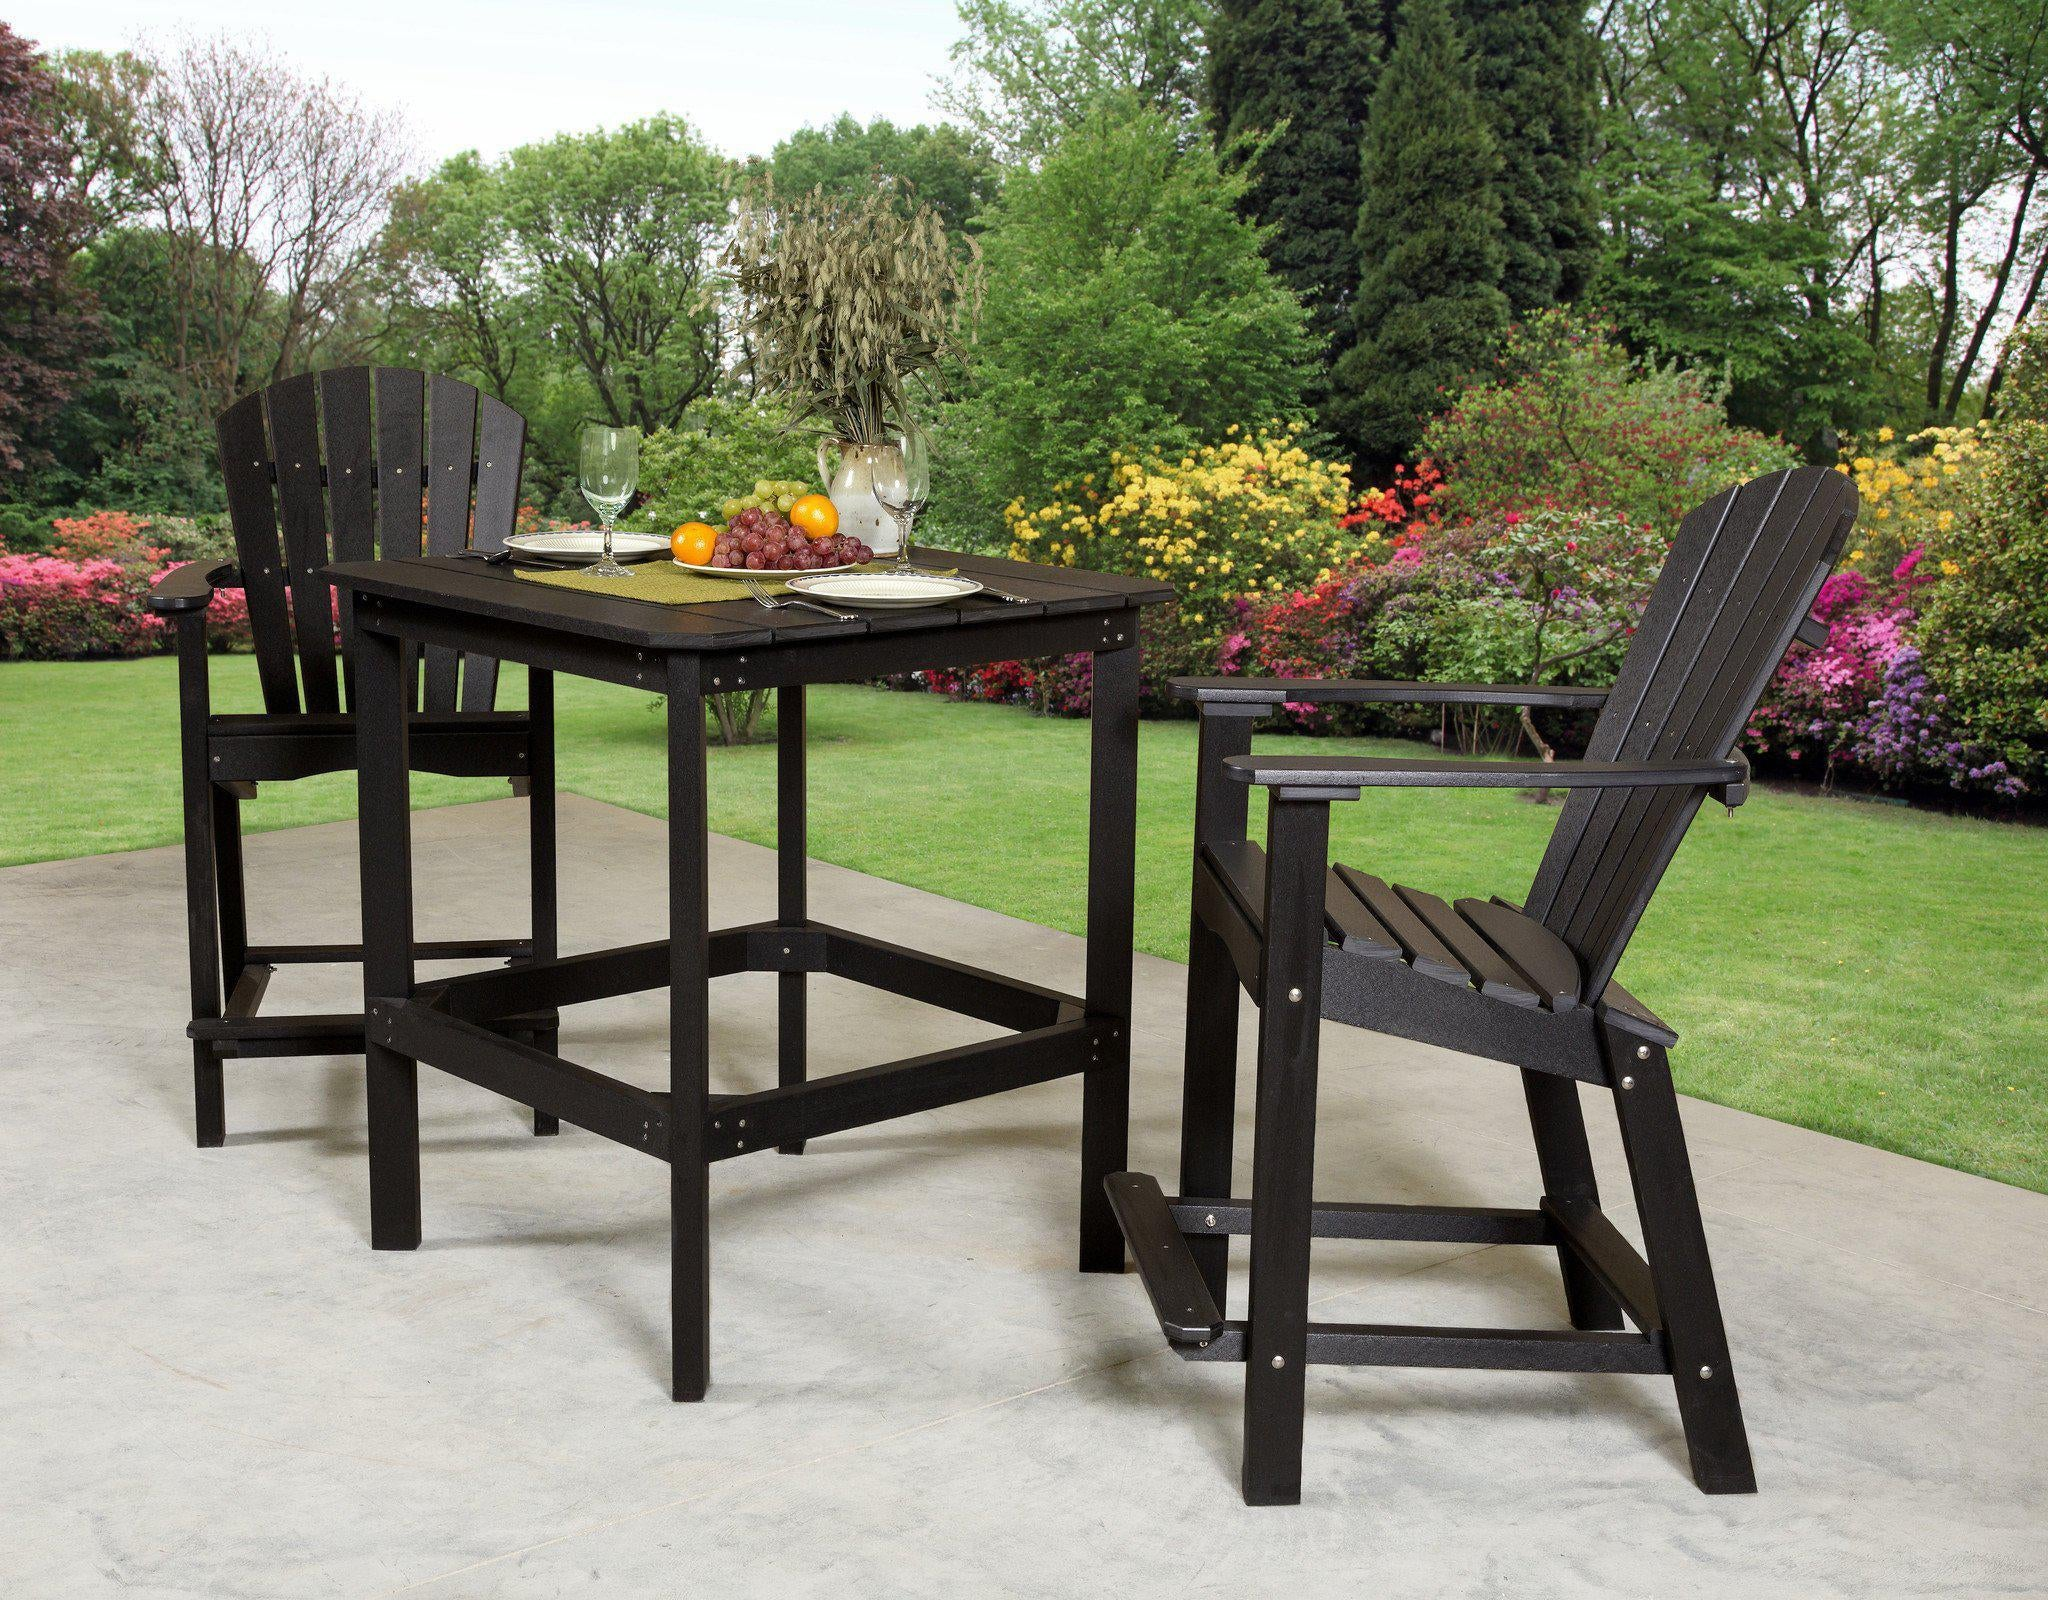 Outdoor Wildridge Poly Furniture Classic High Table Set Rocking